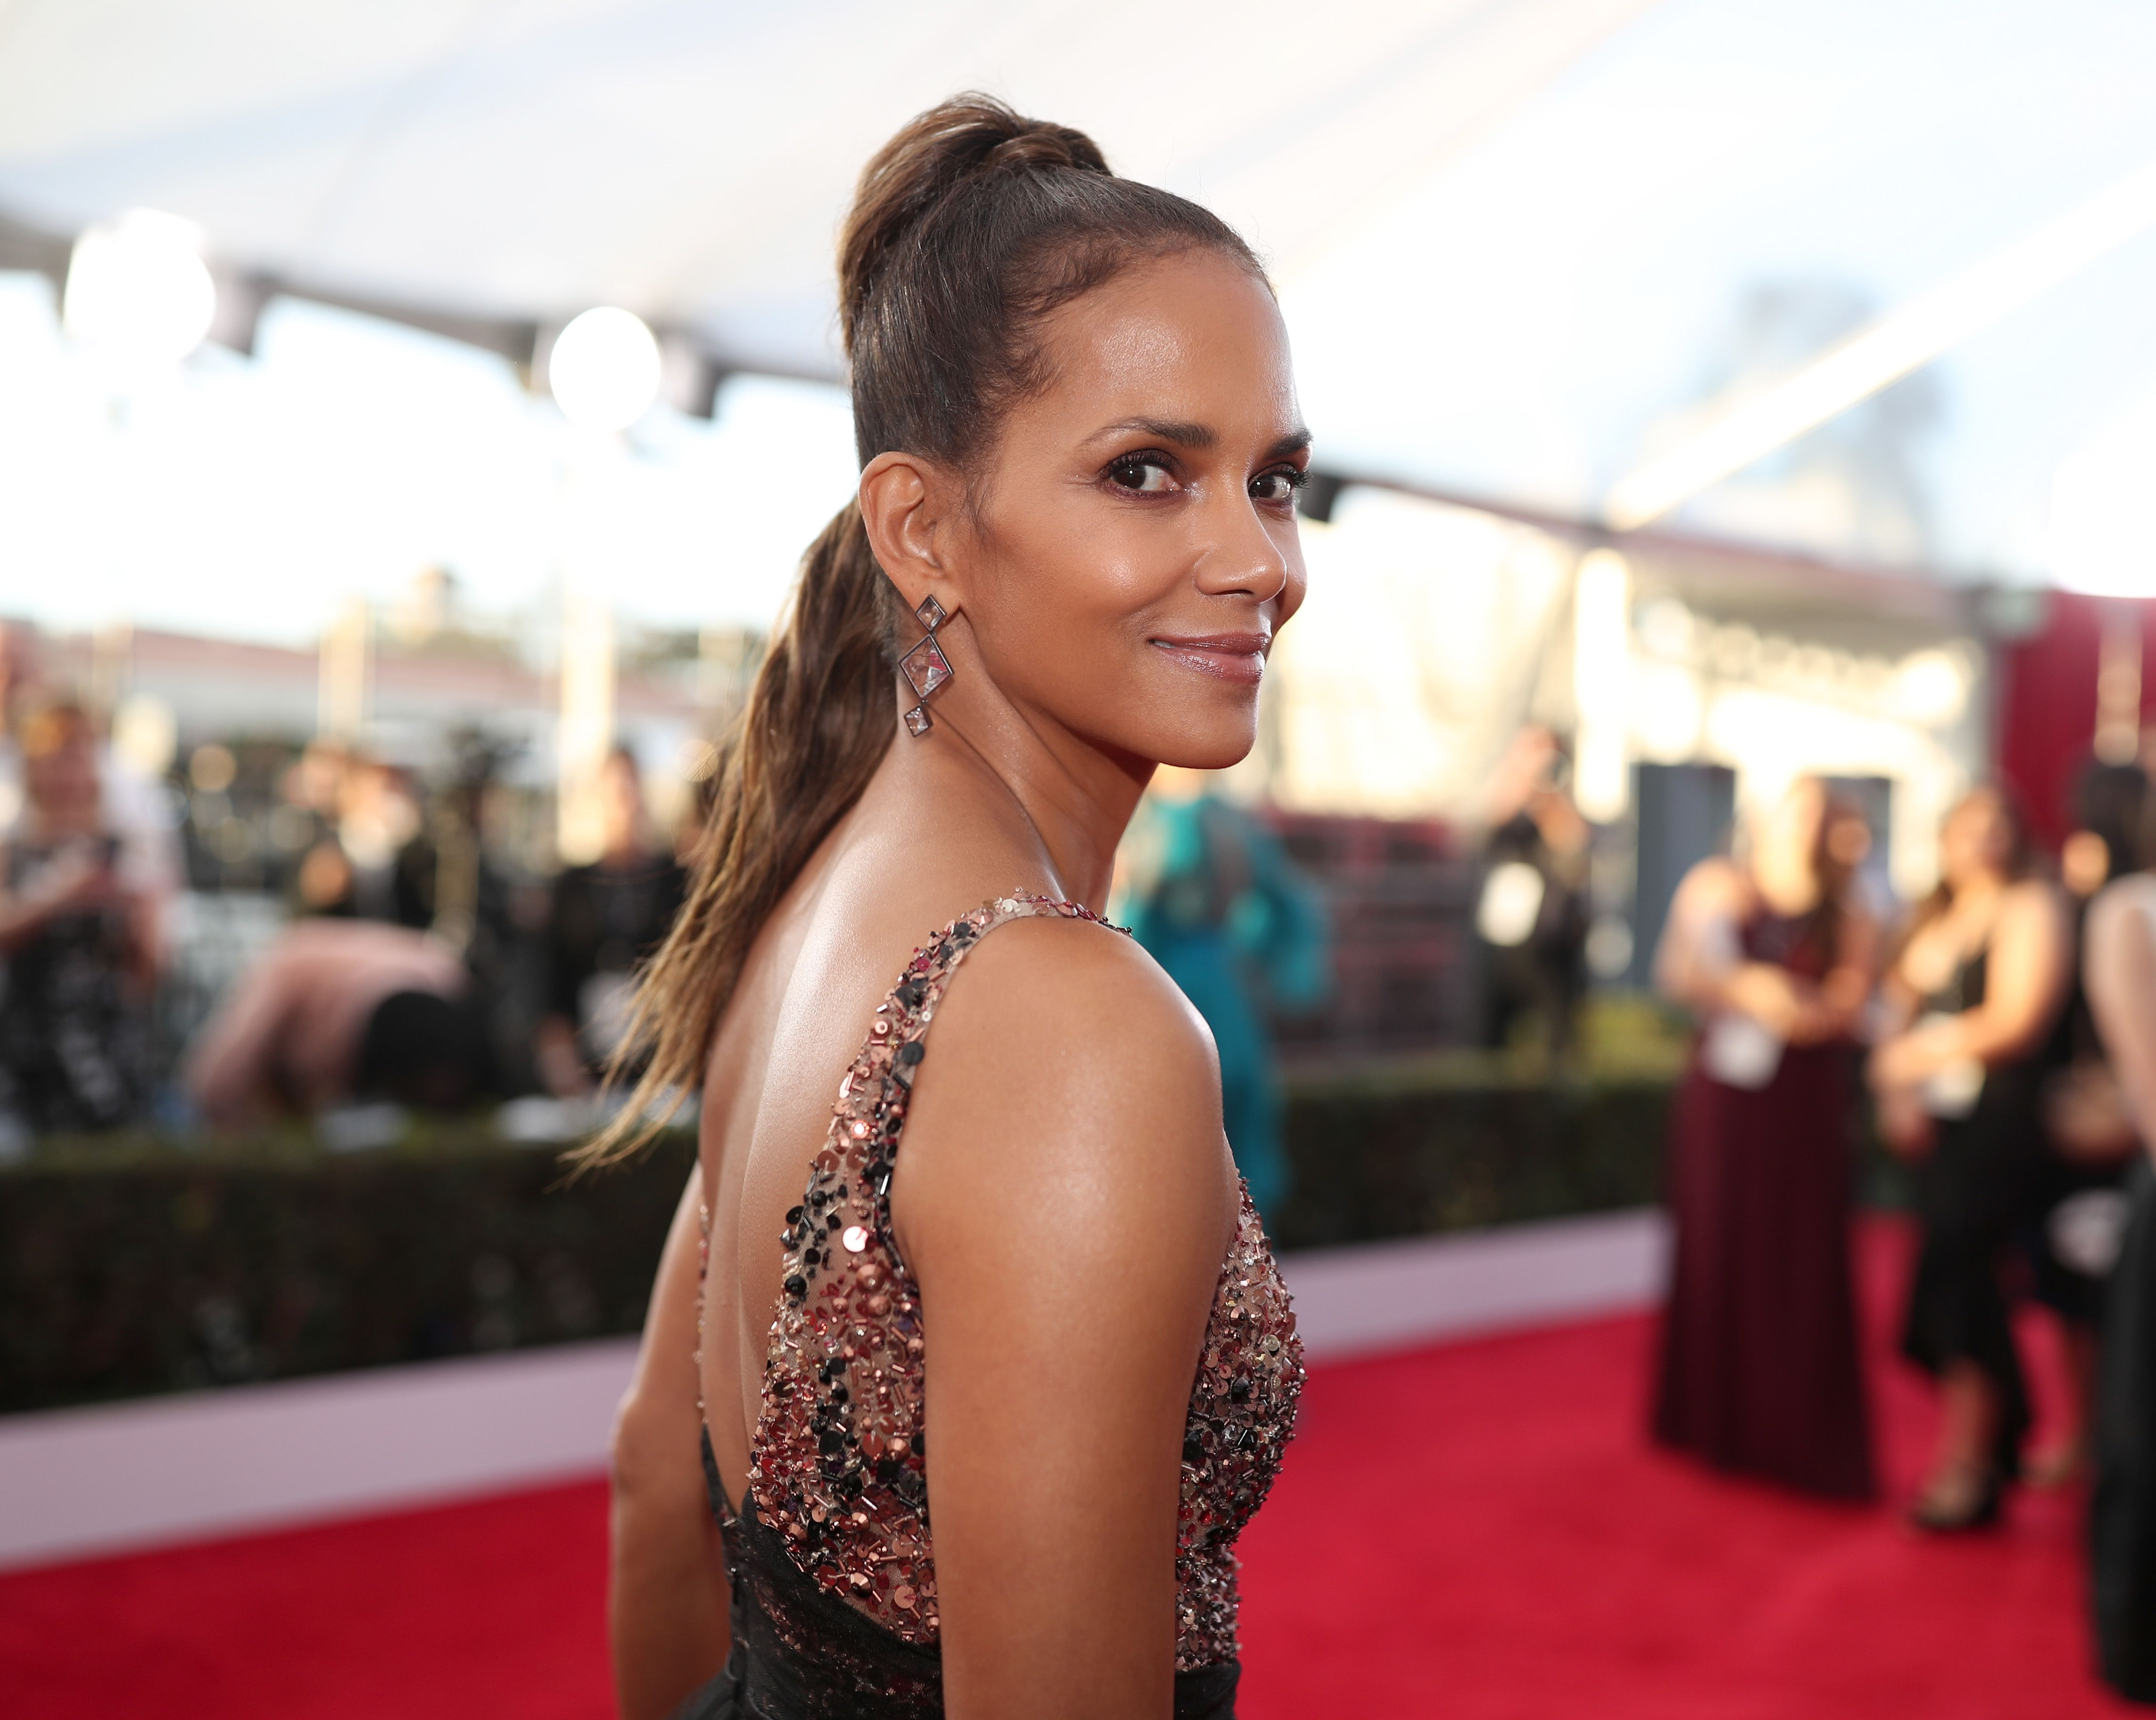 Halle Berry at the 24th Annual Screen Actors Guild Awards in 2018 in Los Angeles, California | Source: Getty Images